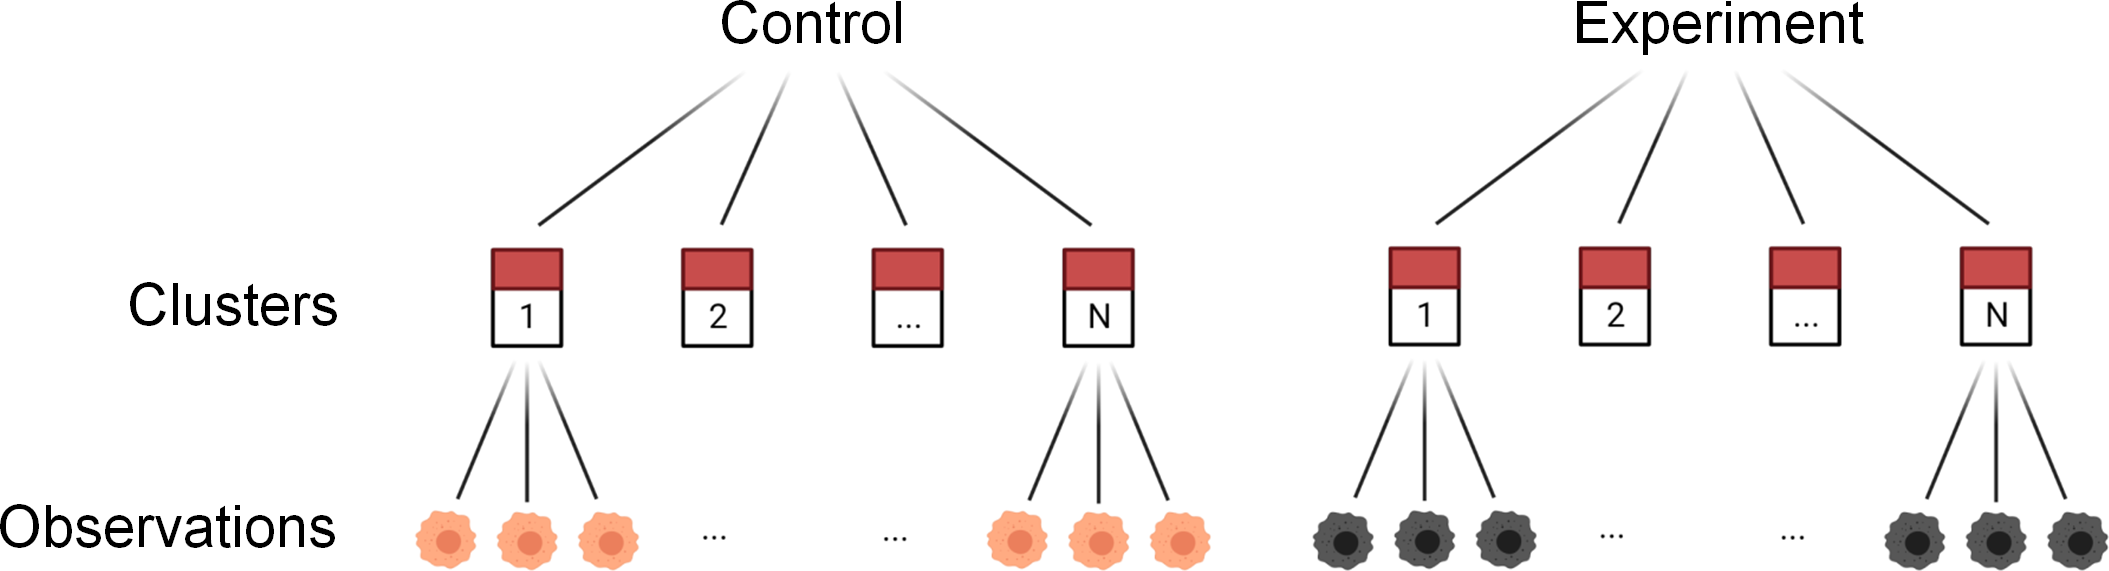 Schematic of a typical biological experiment design, generating nested data